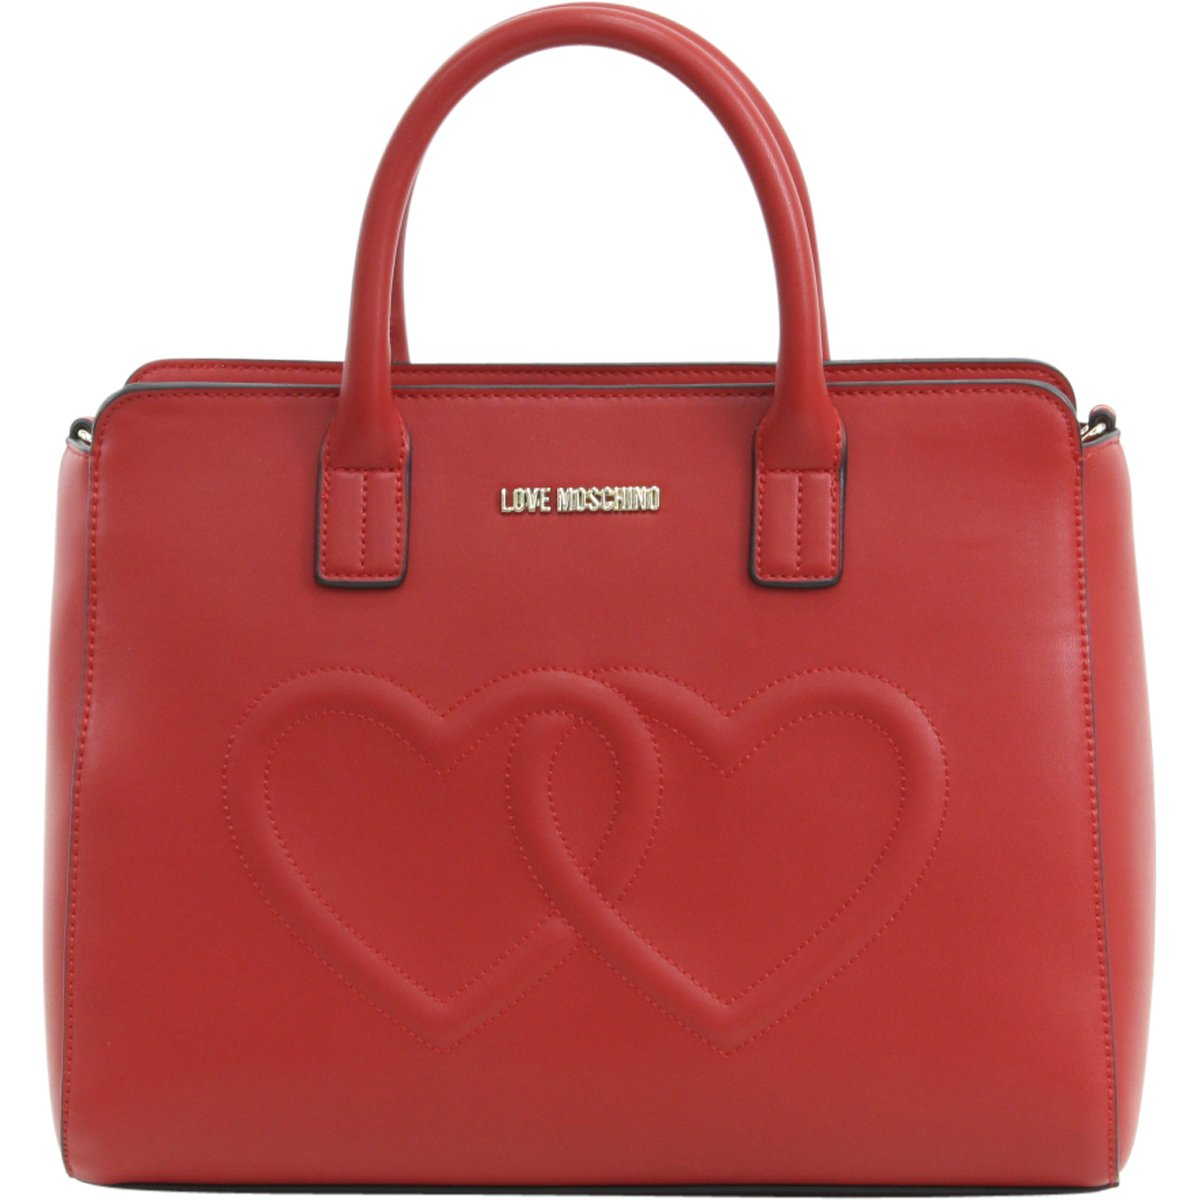 Moschino Women's Love Moschino Shoulder Bag, Red, One Size